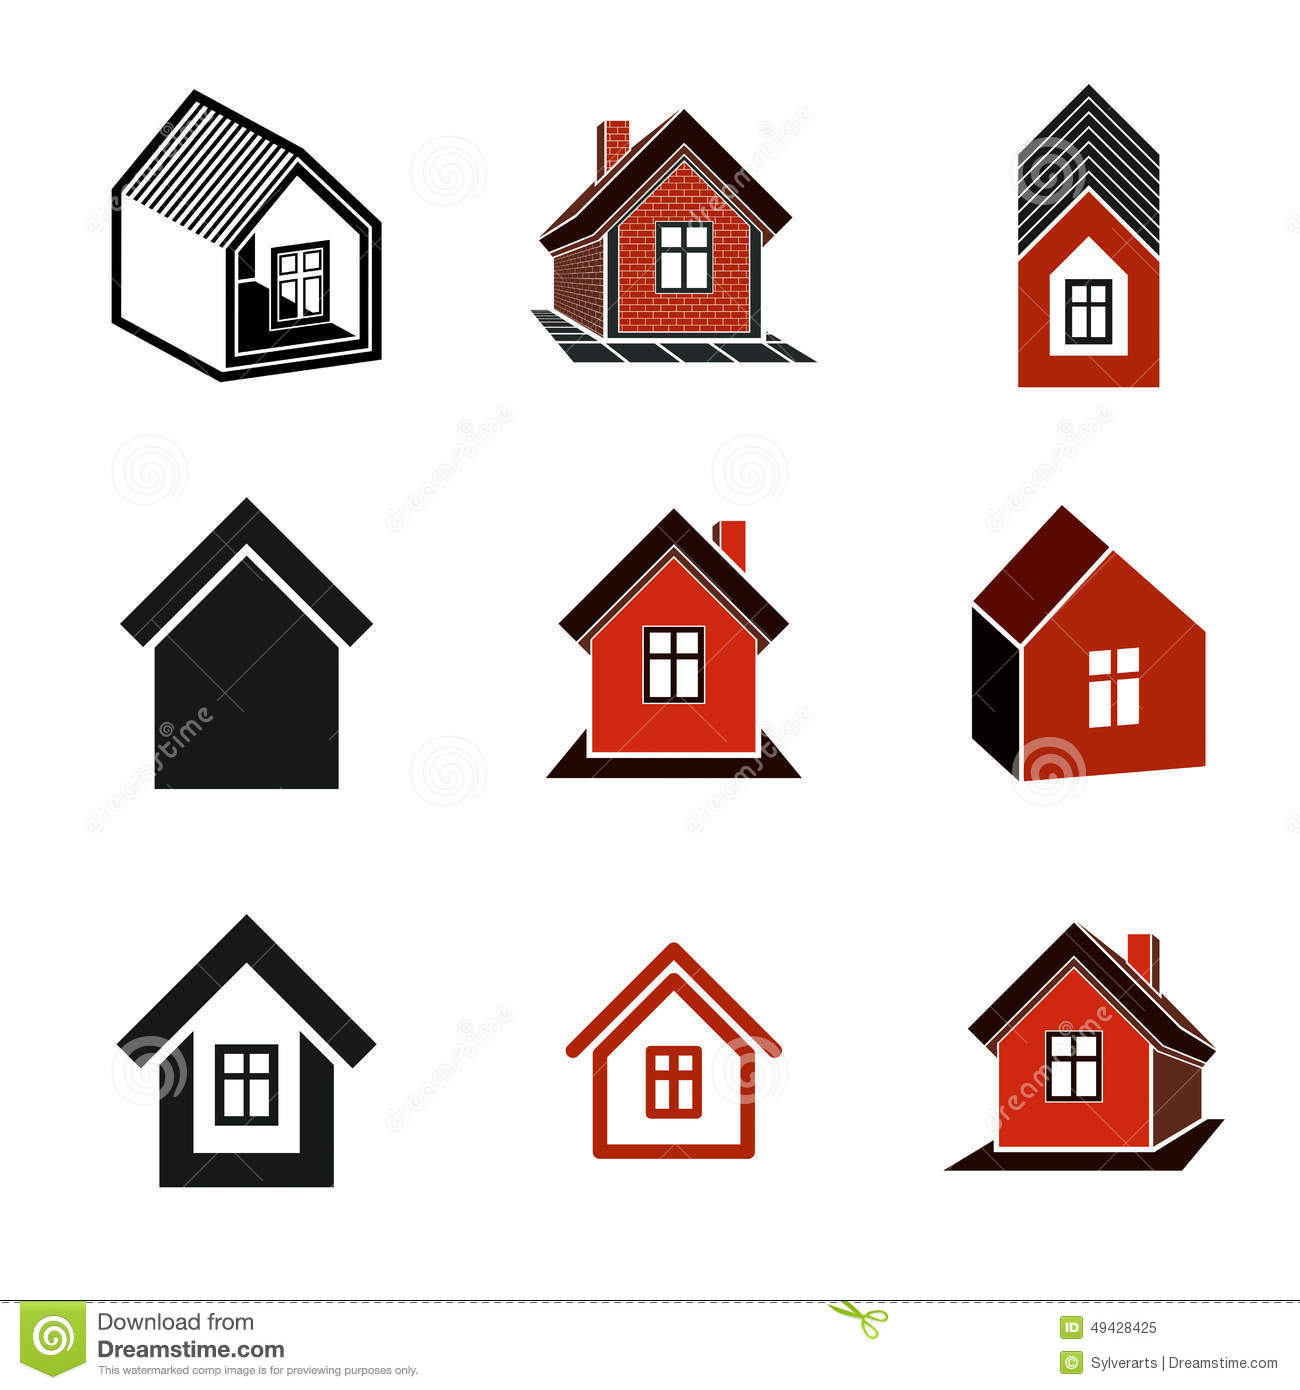 Superb Different Houses Icons For Use In Graphic Design Set Stock Vector Largest Home Design Picture Inspirations Pitcheantrous